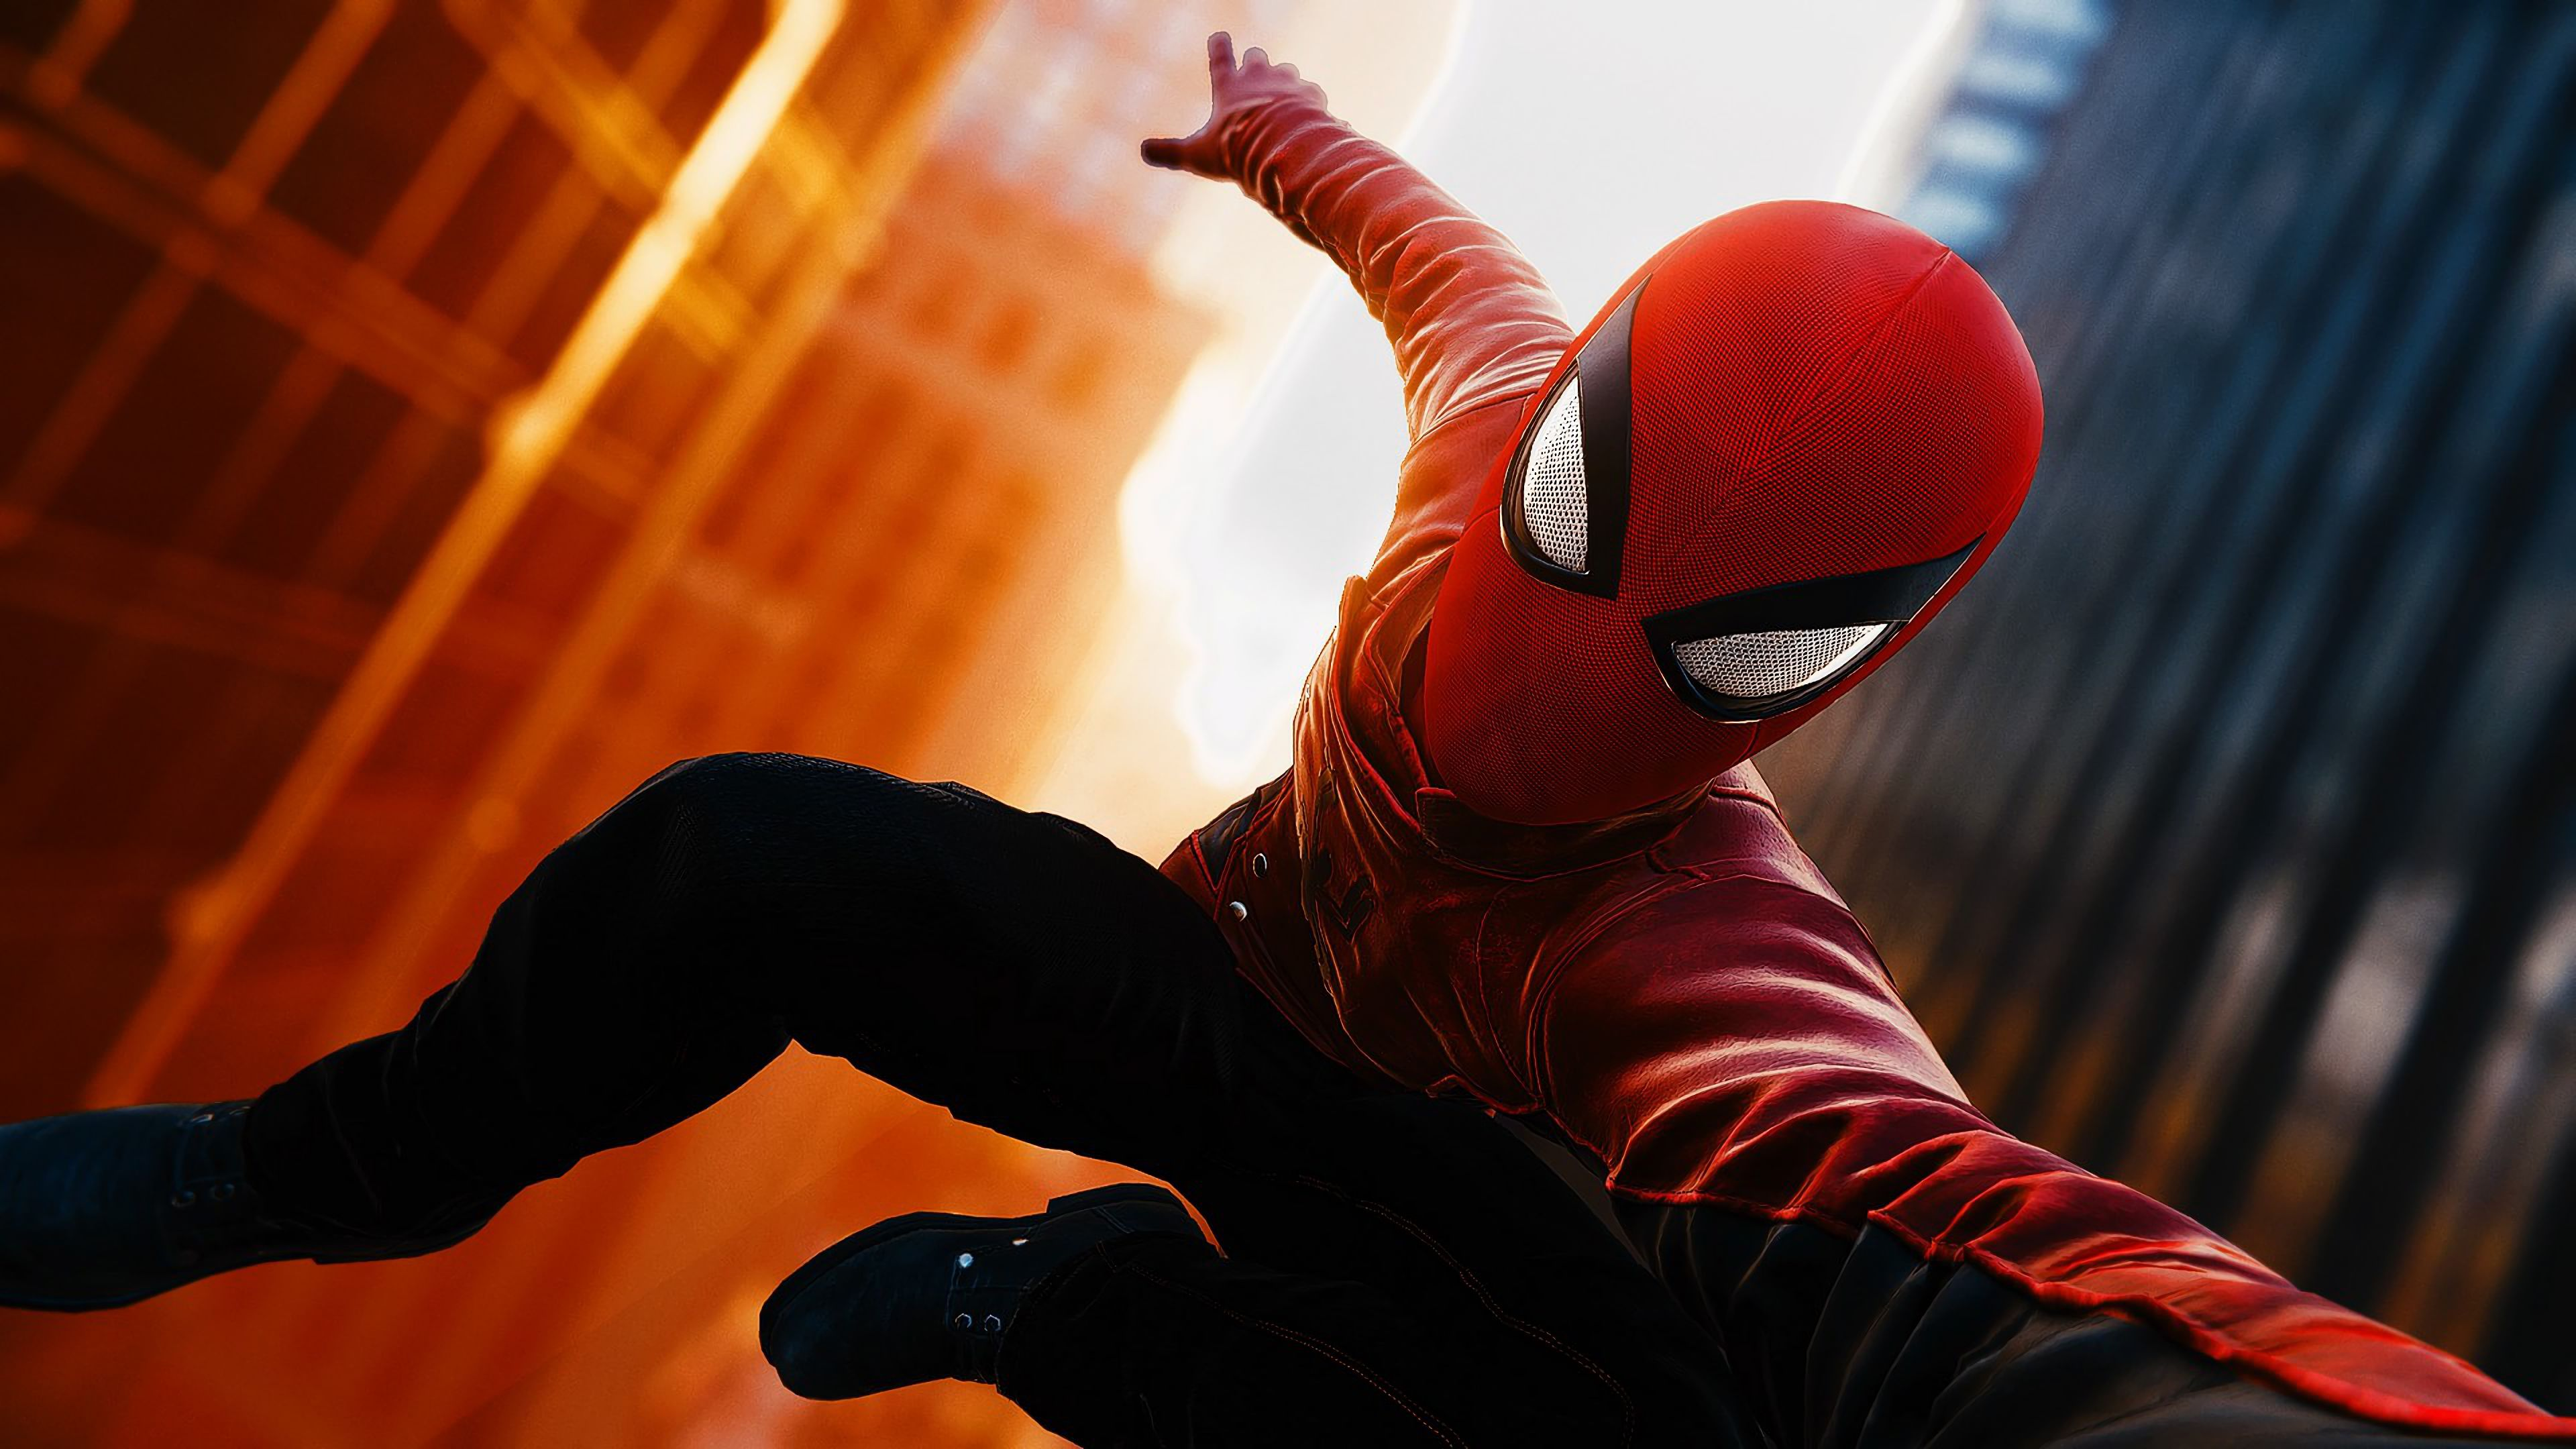 Ps4 Spiderman Wallpaper Pinterest Spiderman Ps4 And